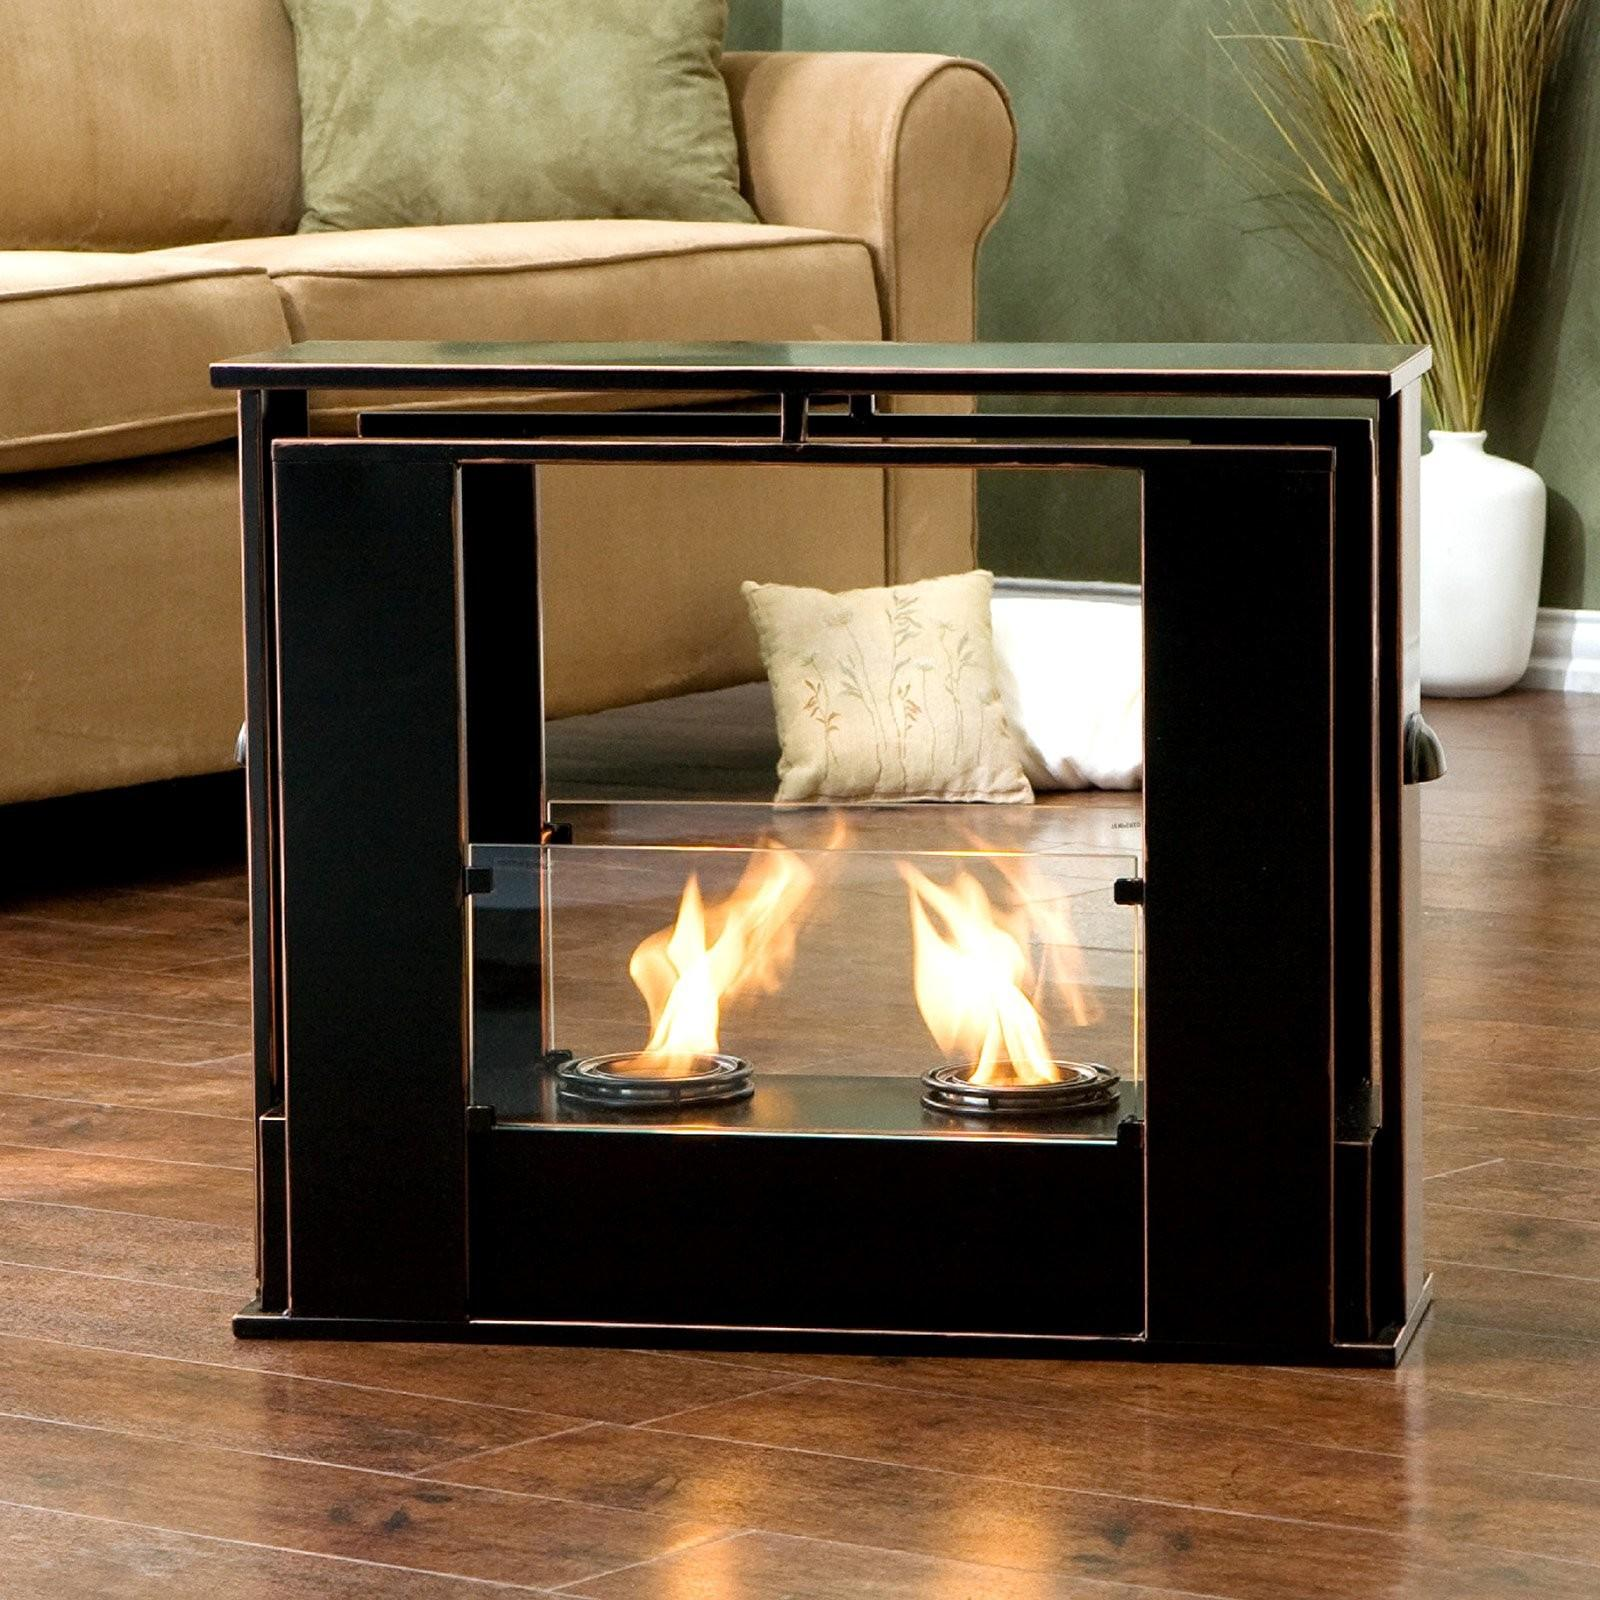 Cozy Portable Fireplace Ideas Modern Home